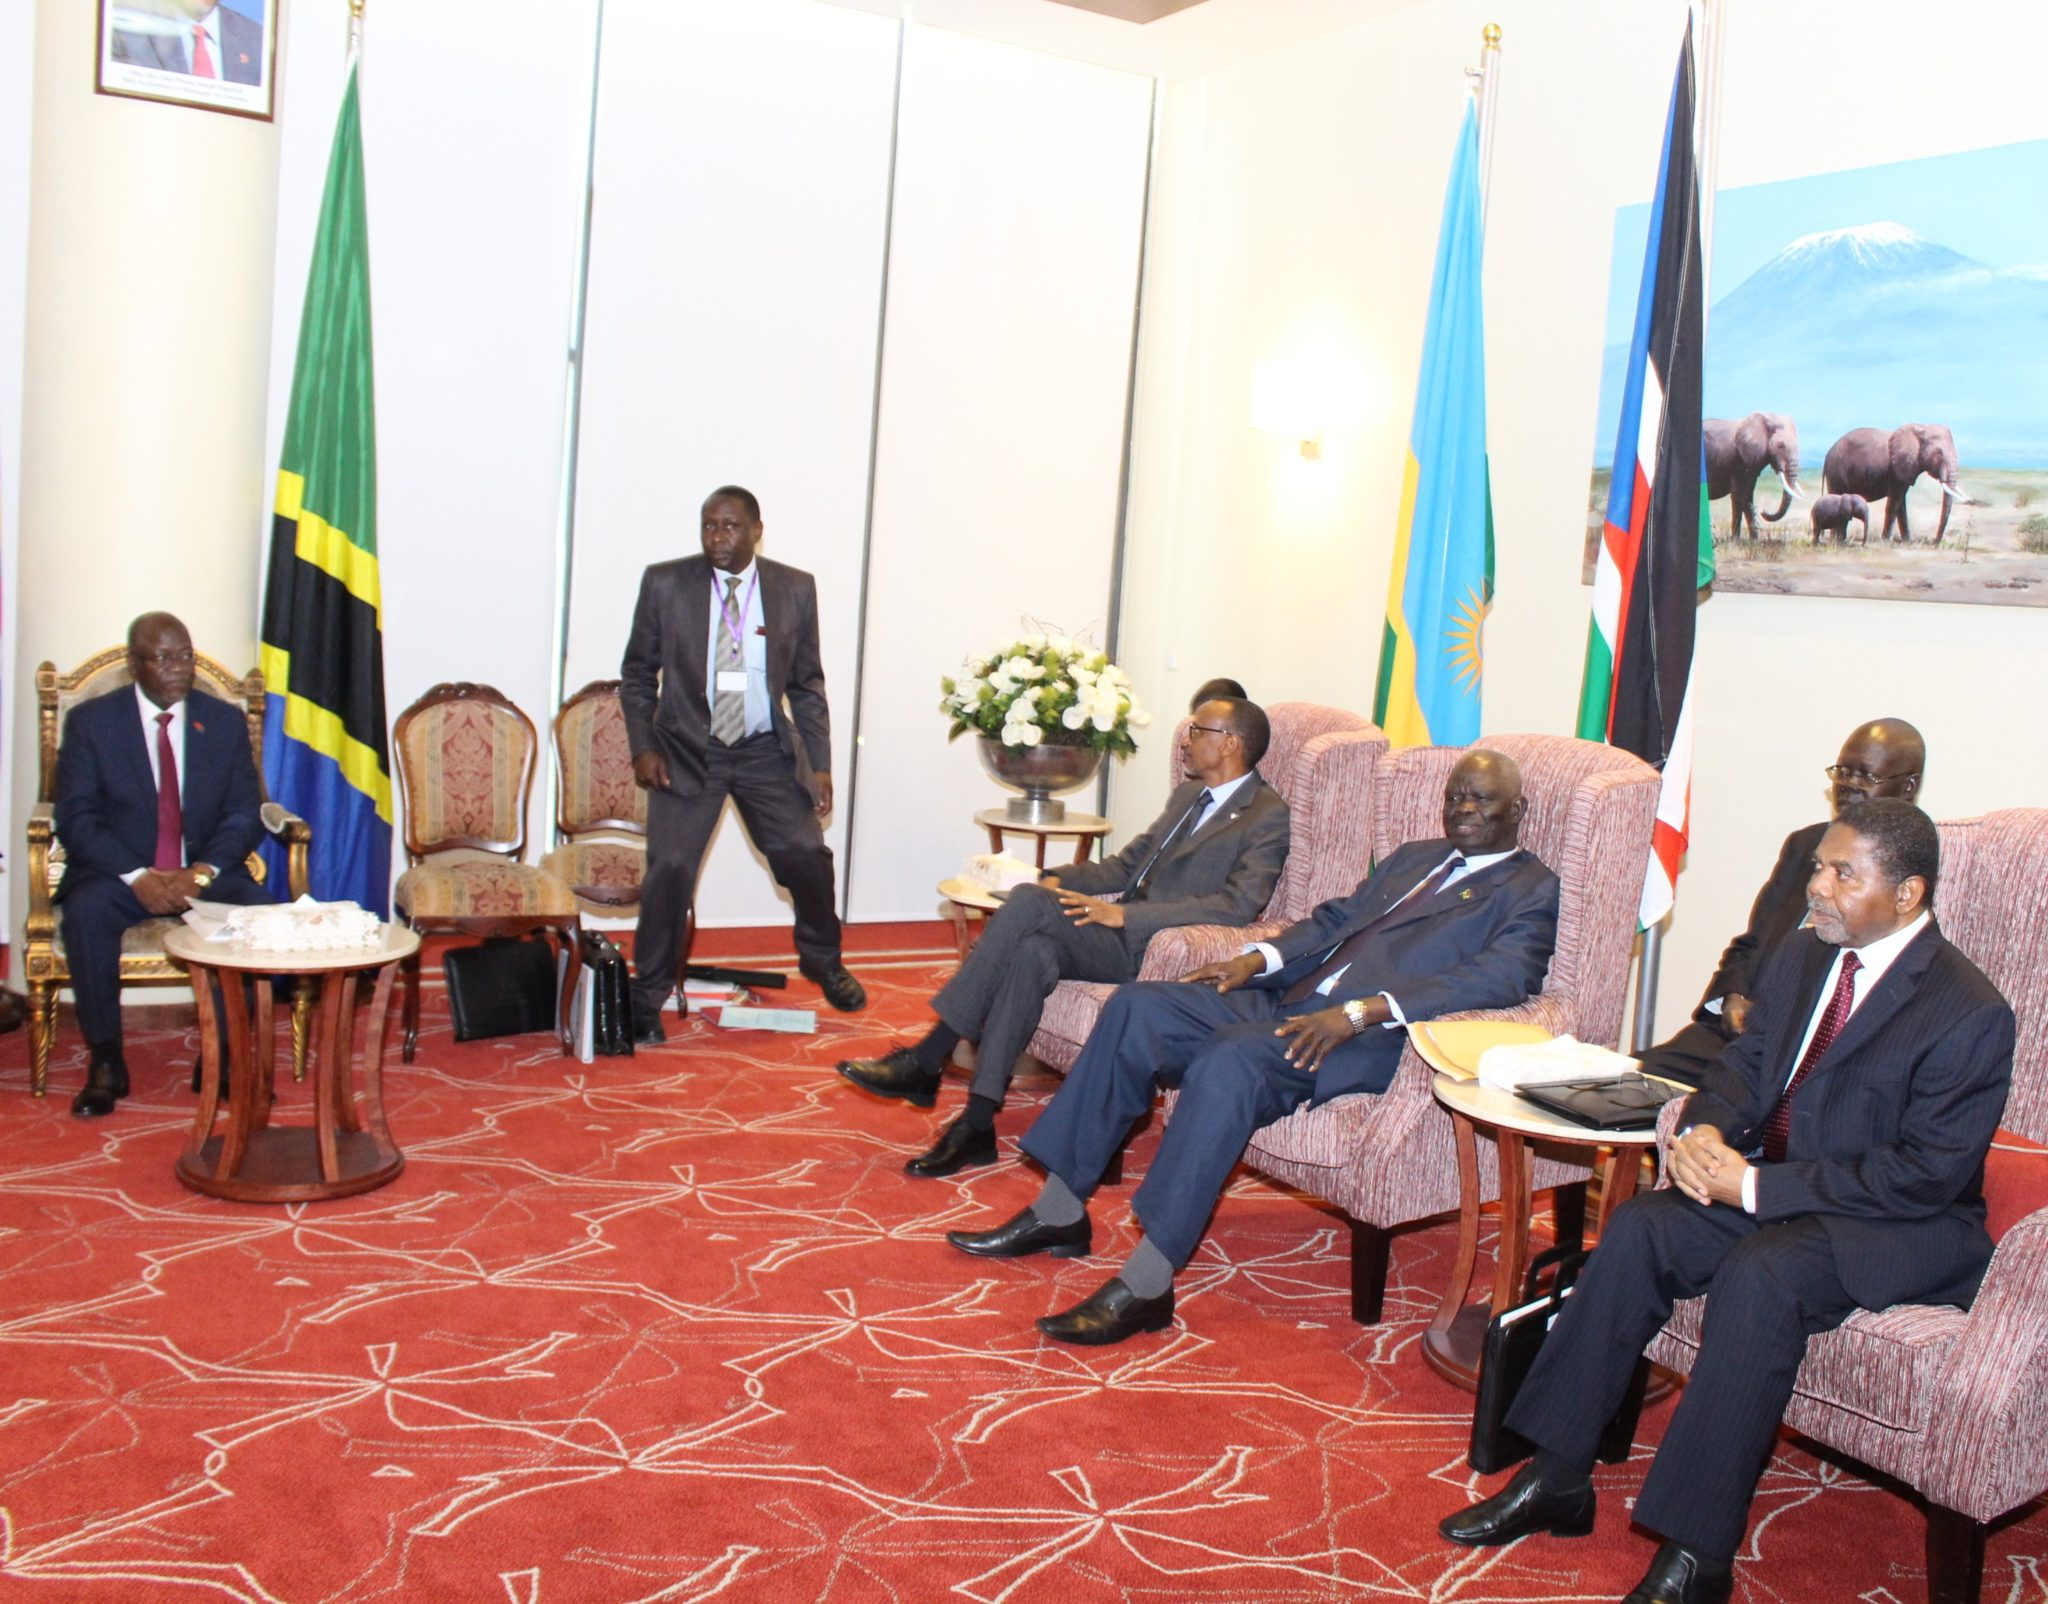 ( R-L) H.E Ali Mohamed Shein, President of Zanzibar; H. E. Hon. Aggrey Tisa Sabuni, Presidential Envoy of the Republic of South Sudan; H.E Paul Kagame of the Republic of Rwanda; Dr Antony Kafumbe, Counsel to the Community(EAC) and H.E Dr John Pombe Magufuli, President of the United Republic of Tanzania and Chair of the EAC Summit during the closed session.